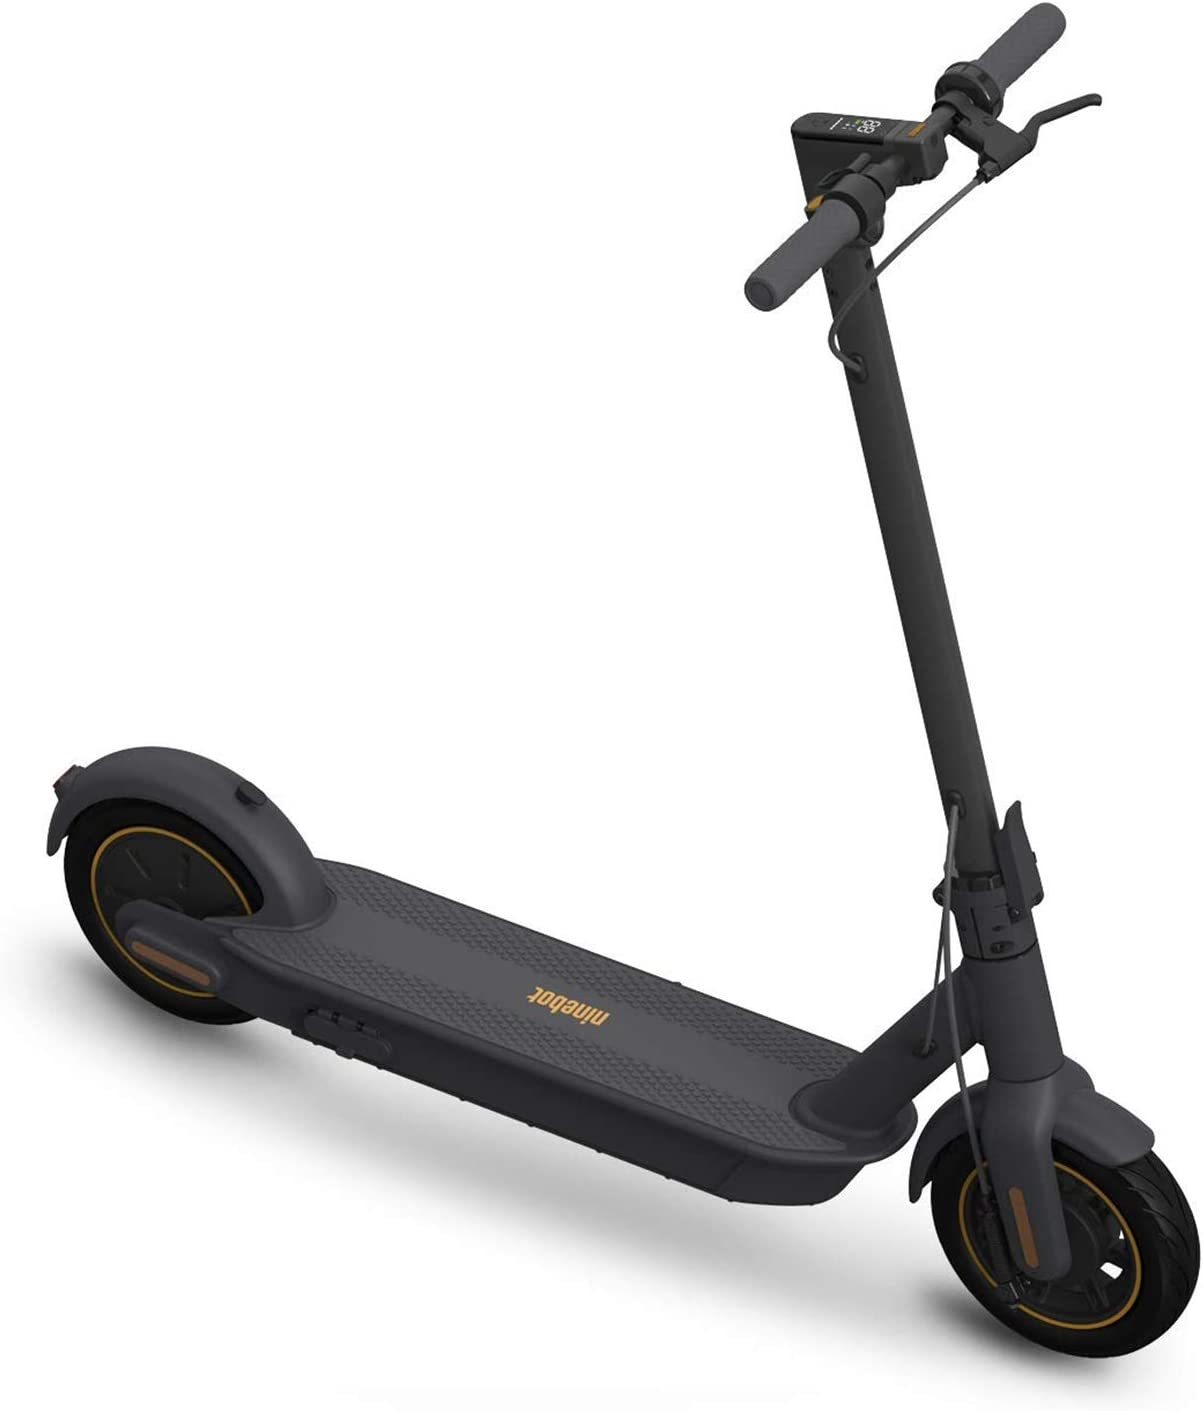 best electric scooter for climbing hills: Segway Ninebot MAX Electric Kick Scooter